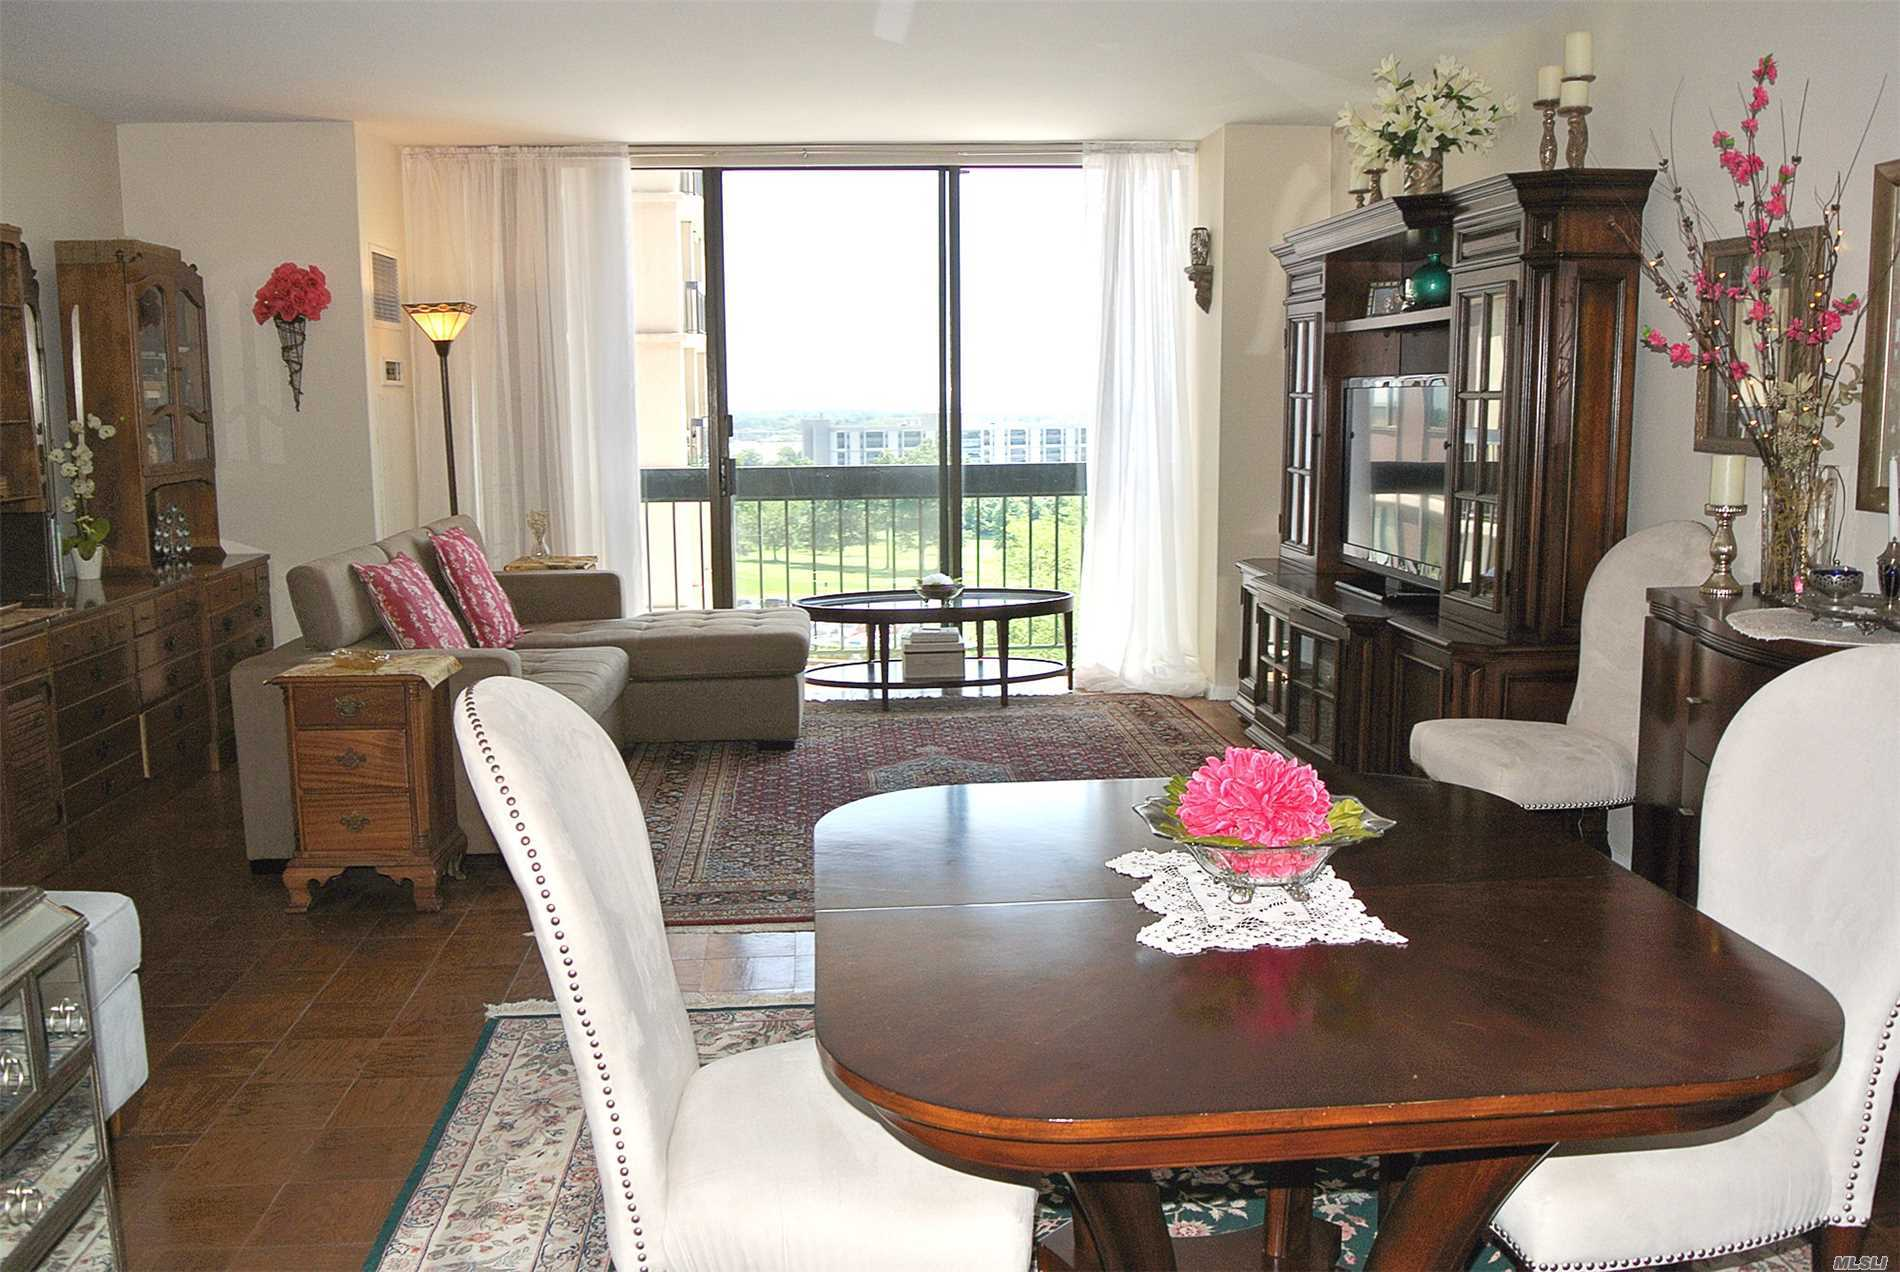 Largest 1 Bedroom! This Sunny And Spacious Layout Has A Wide Living Room With Dining Foyer. Gourmet Kitchen With White Cabinets Including Washer And Dryer. Large Bedroom With Great Closets And Lavish Bath. Magnificent Views Of Golf From Your Balcony. Great Location!!